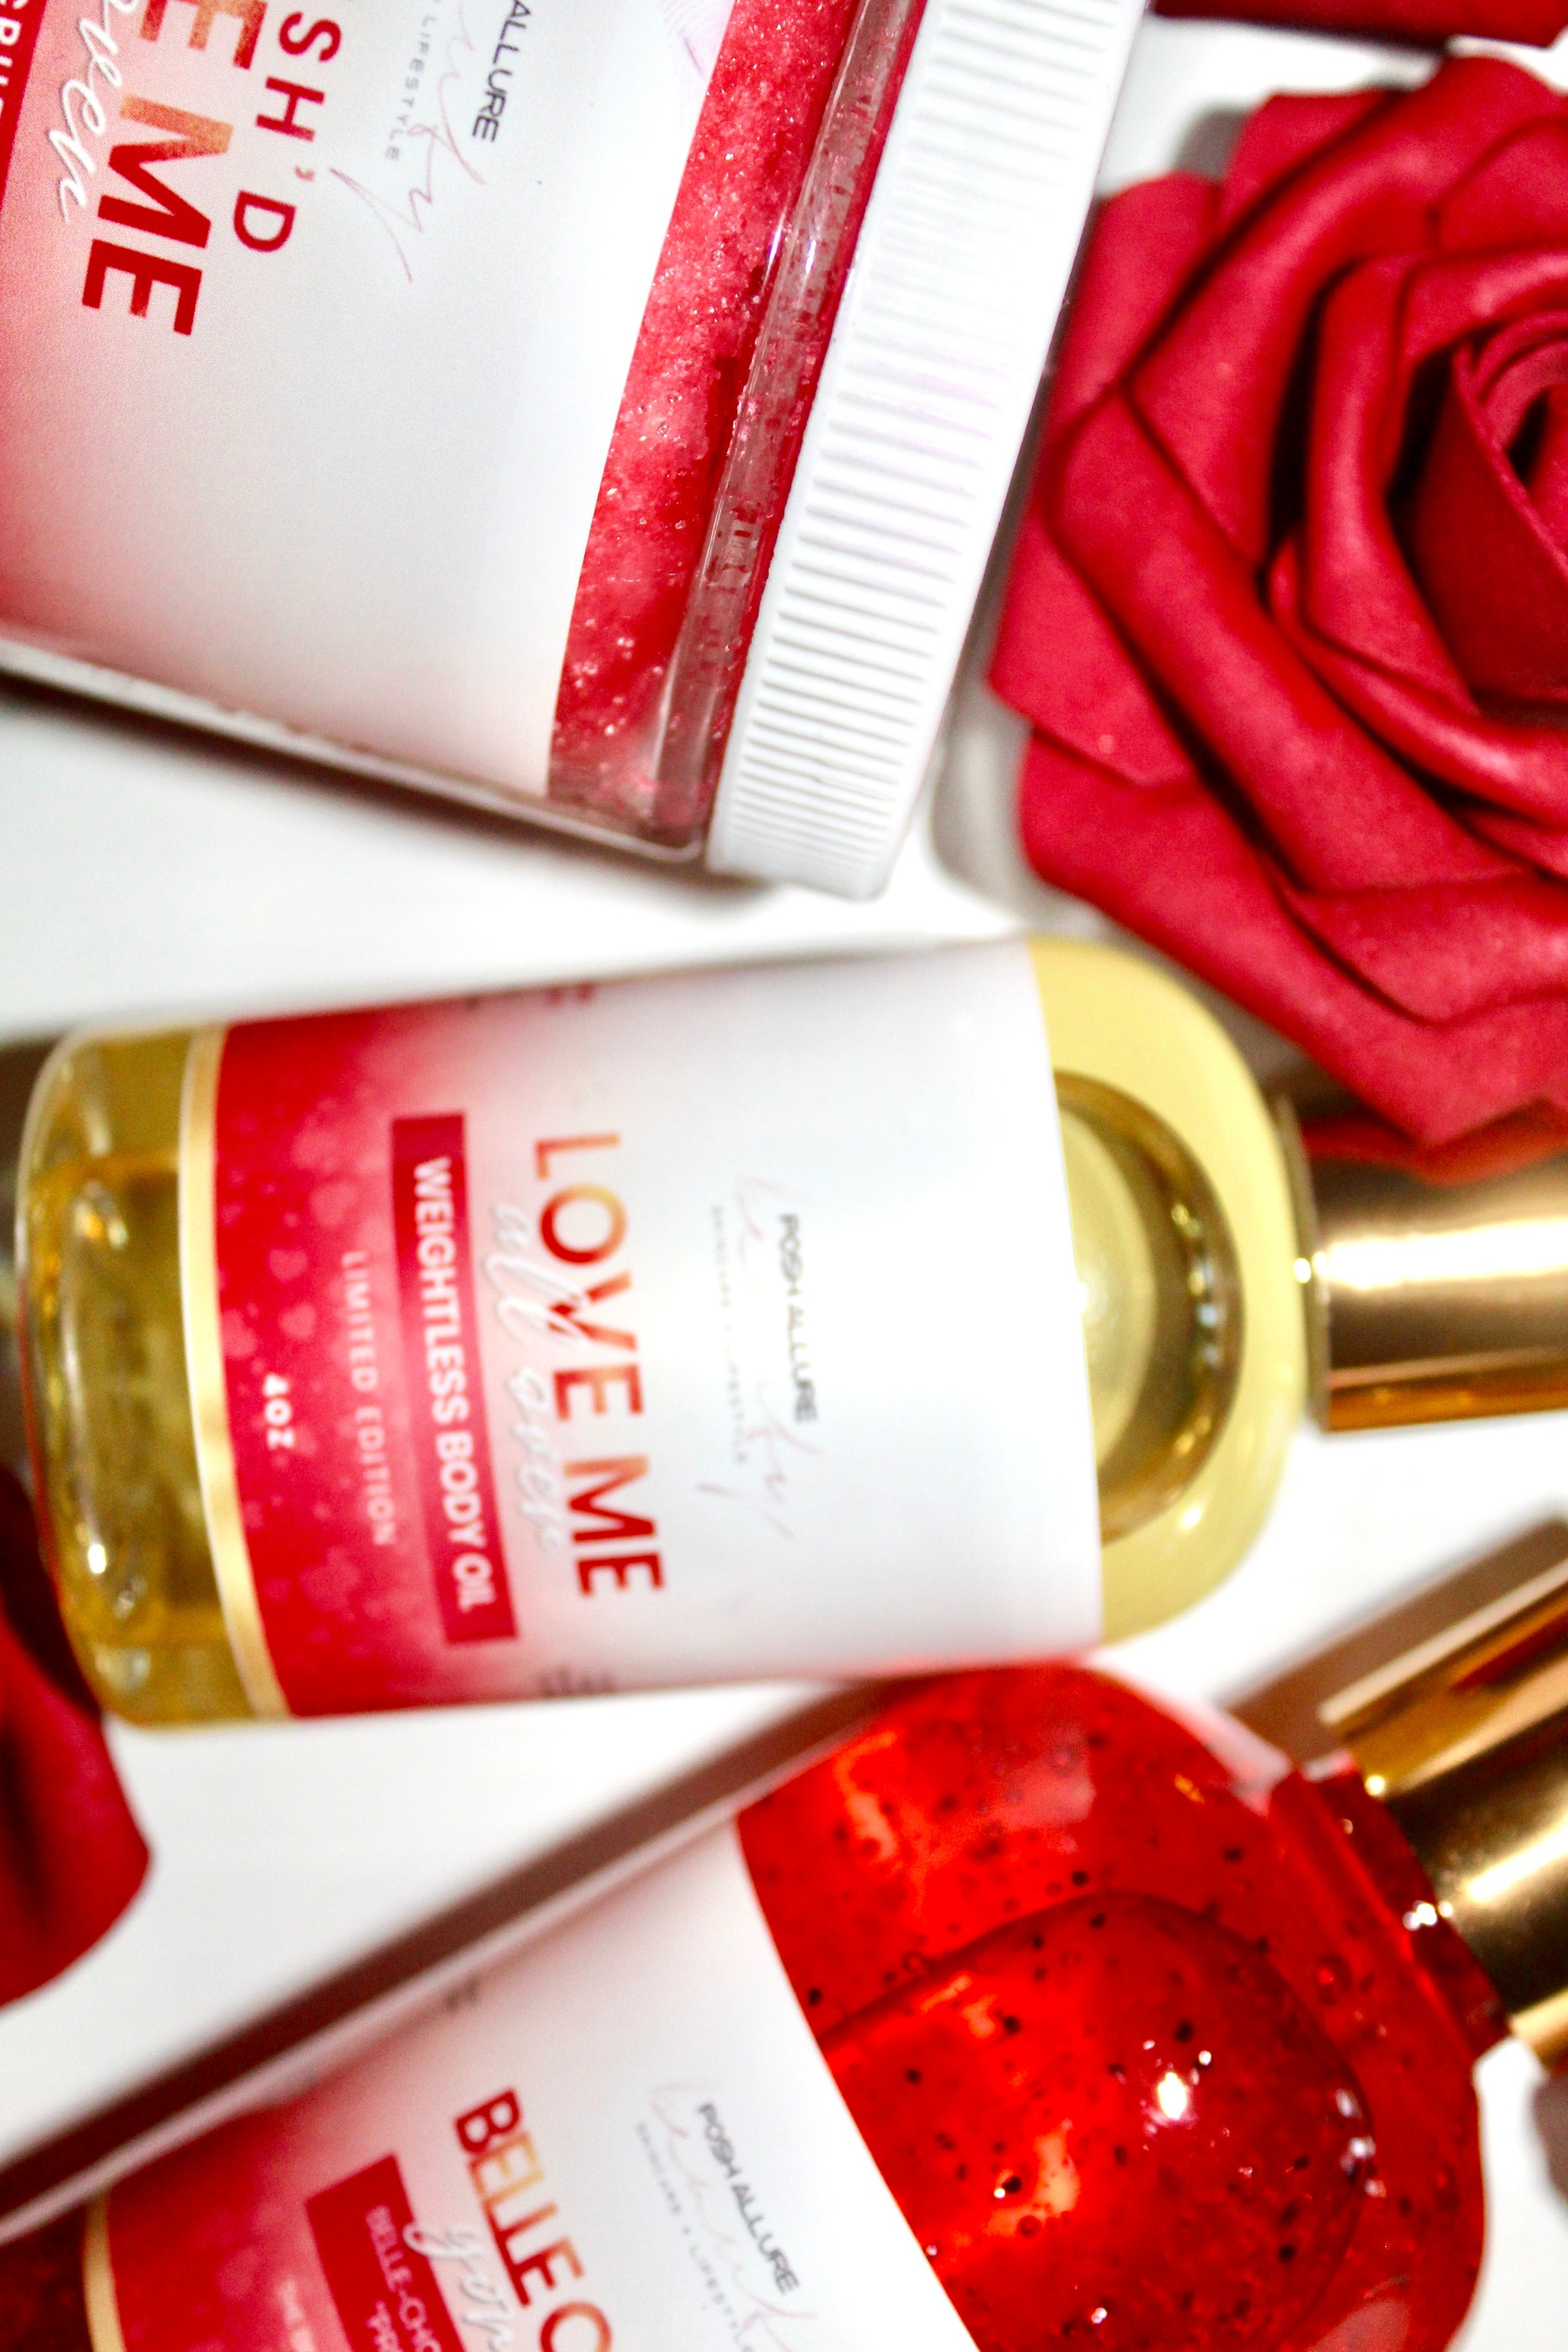 Love Me All Over Body Oil - Posh|Allure Beauty